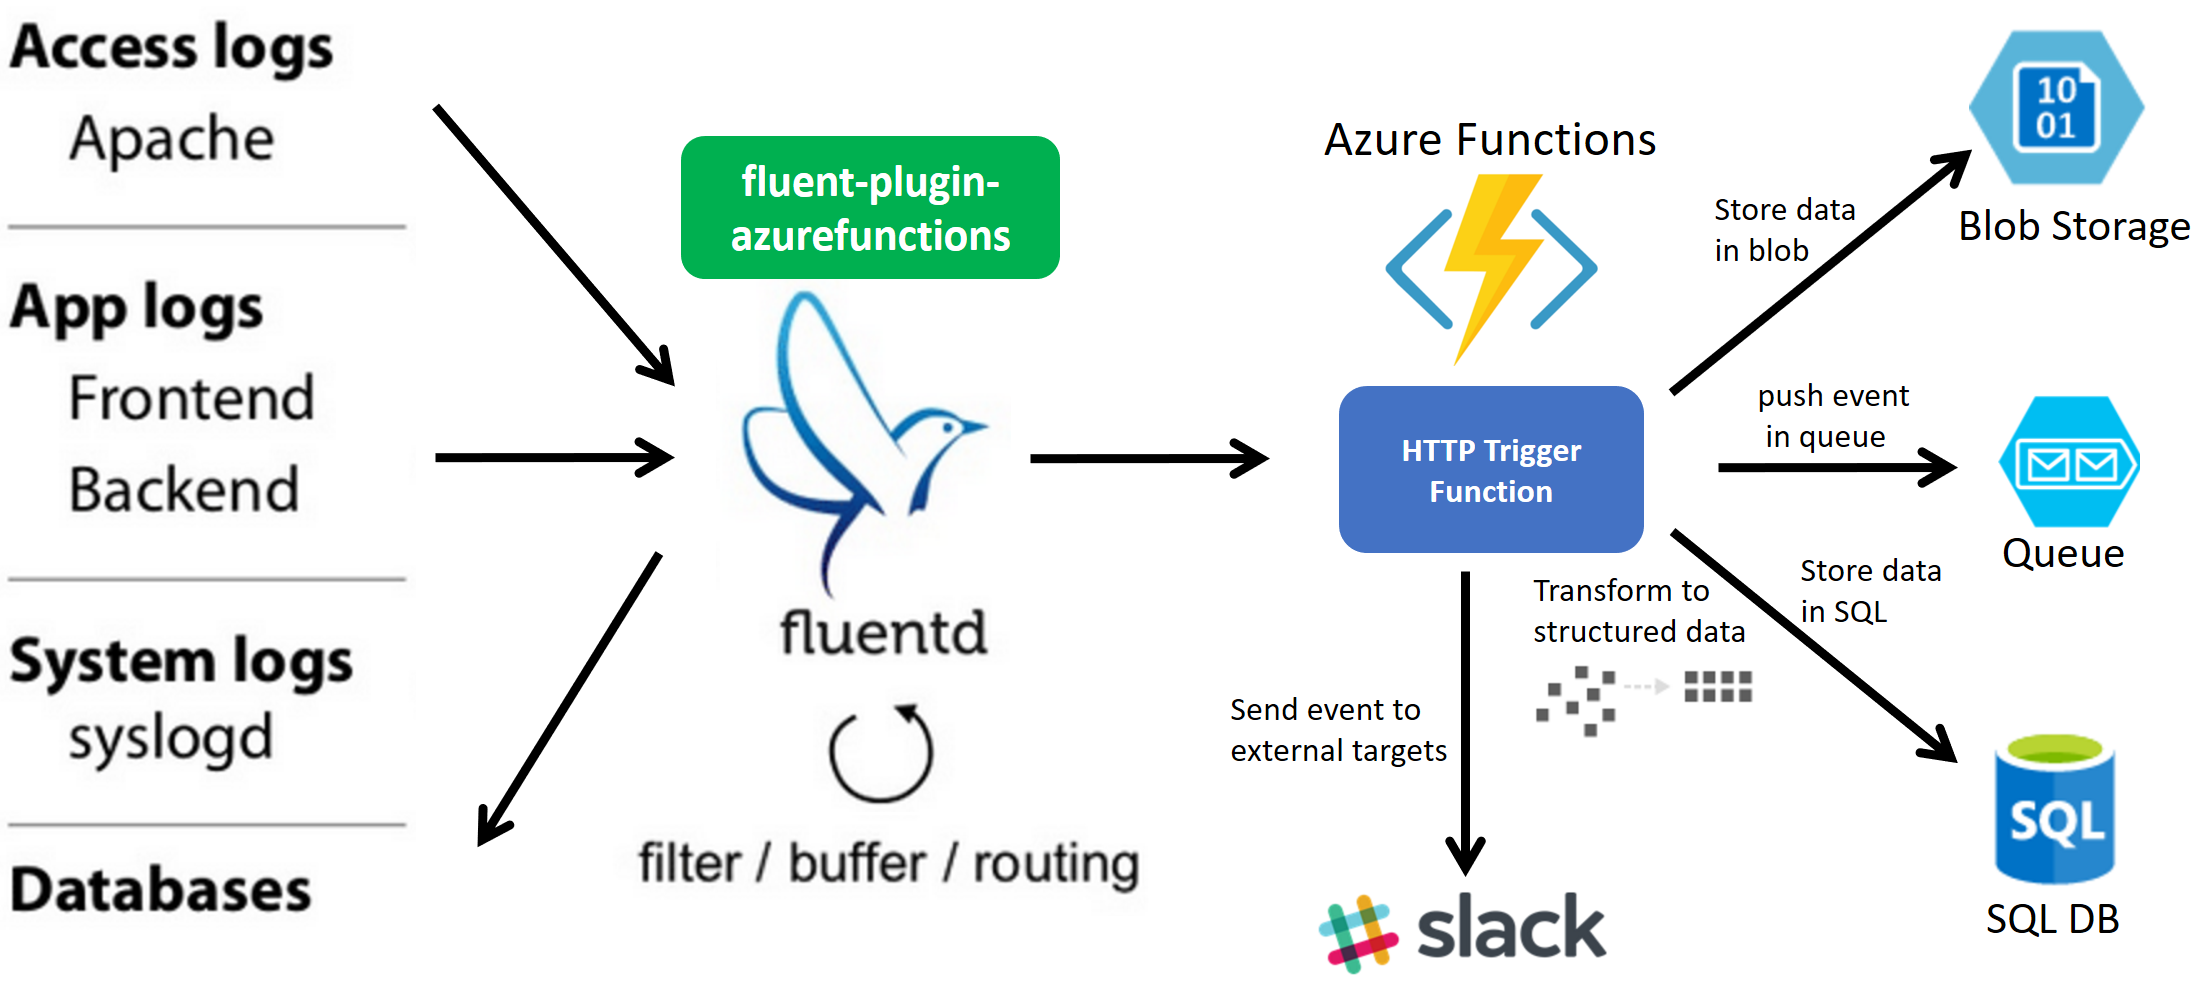 fluent-plugin-azurefunctions overview